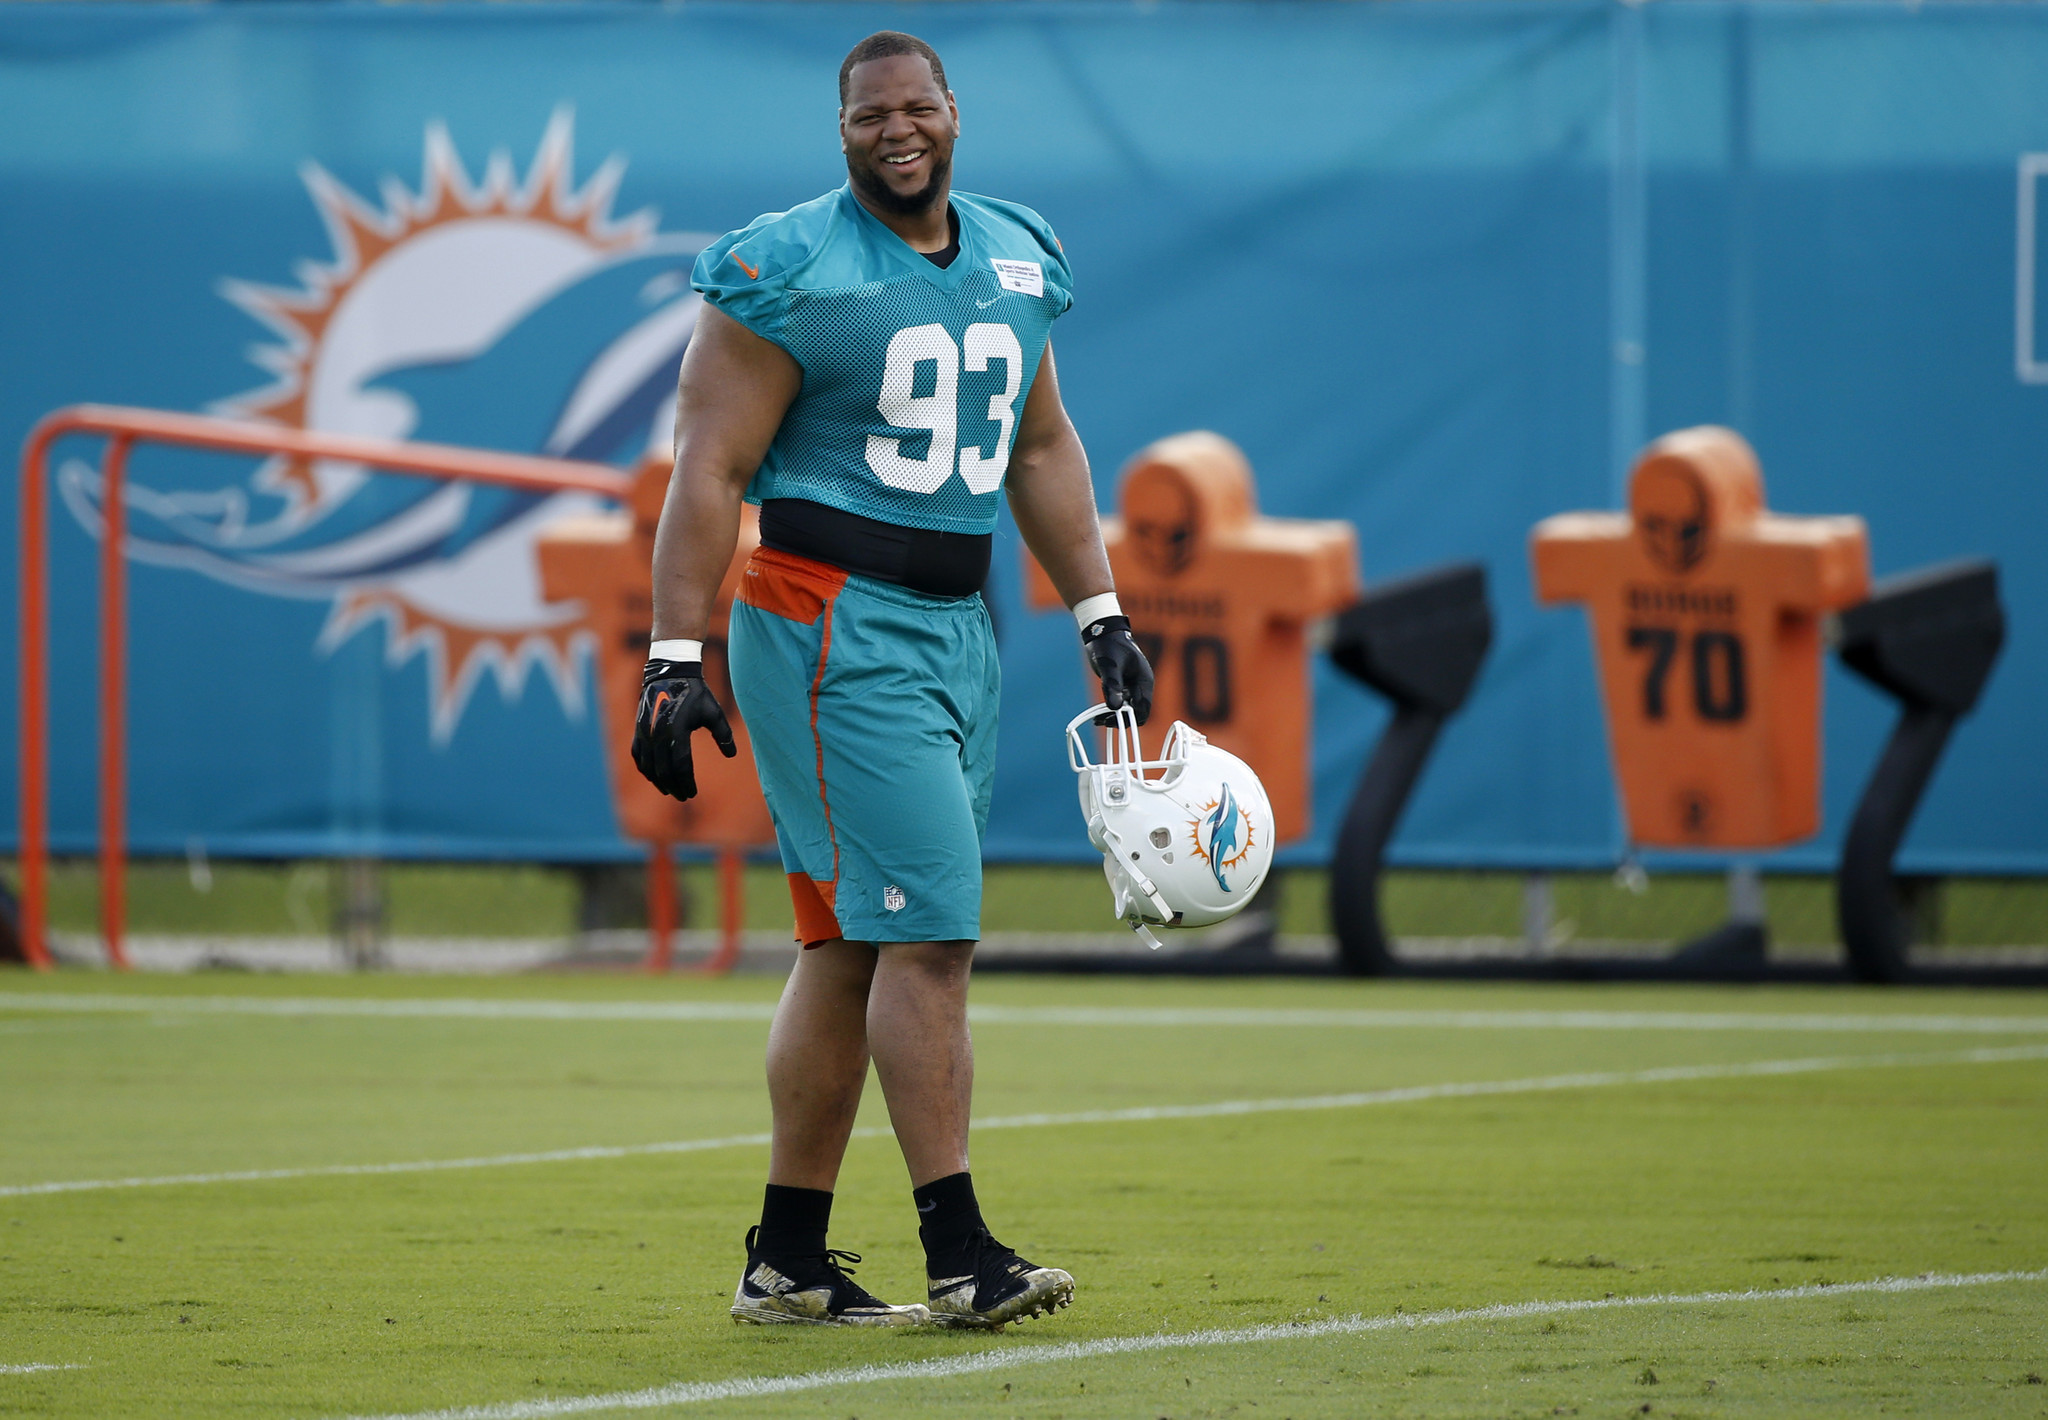 Dolphins 305 pound dt ndamukong suh showcases his leg as a kicker dolphins 305 pound dt ndamukong suh showcases his leg as a kicker during practice sun sentinel voltagebd Images